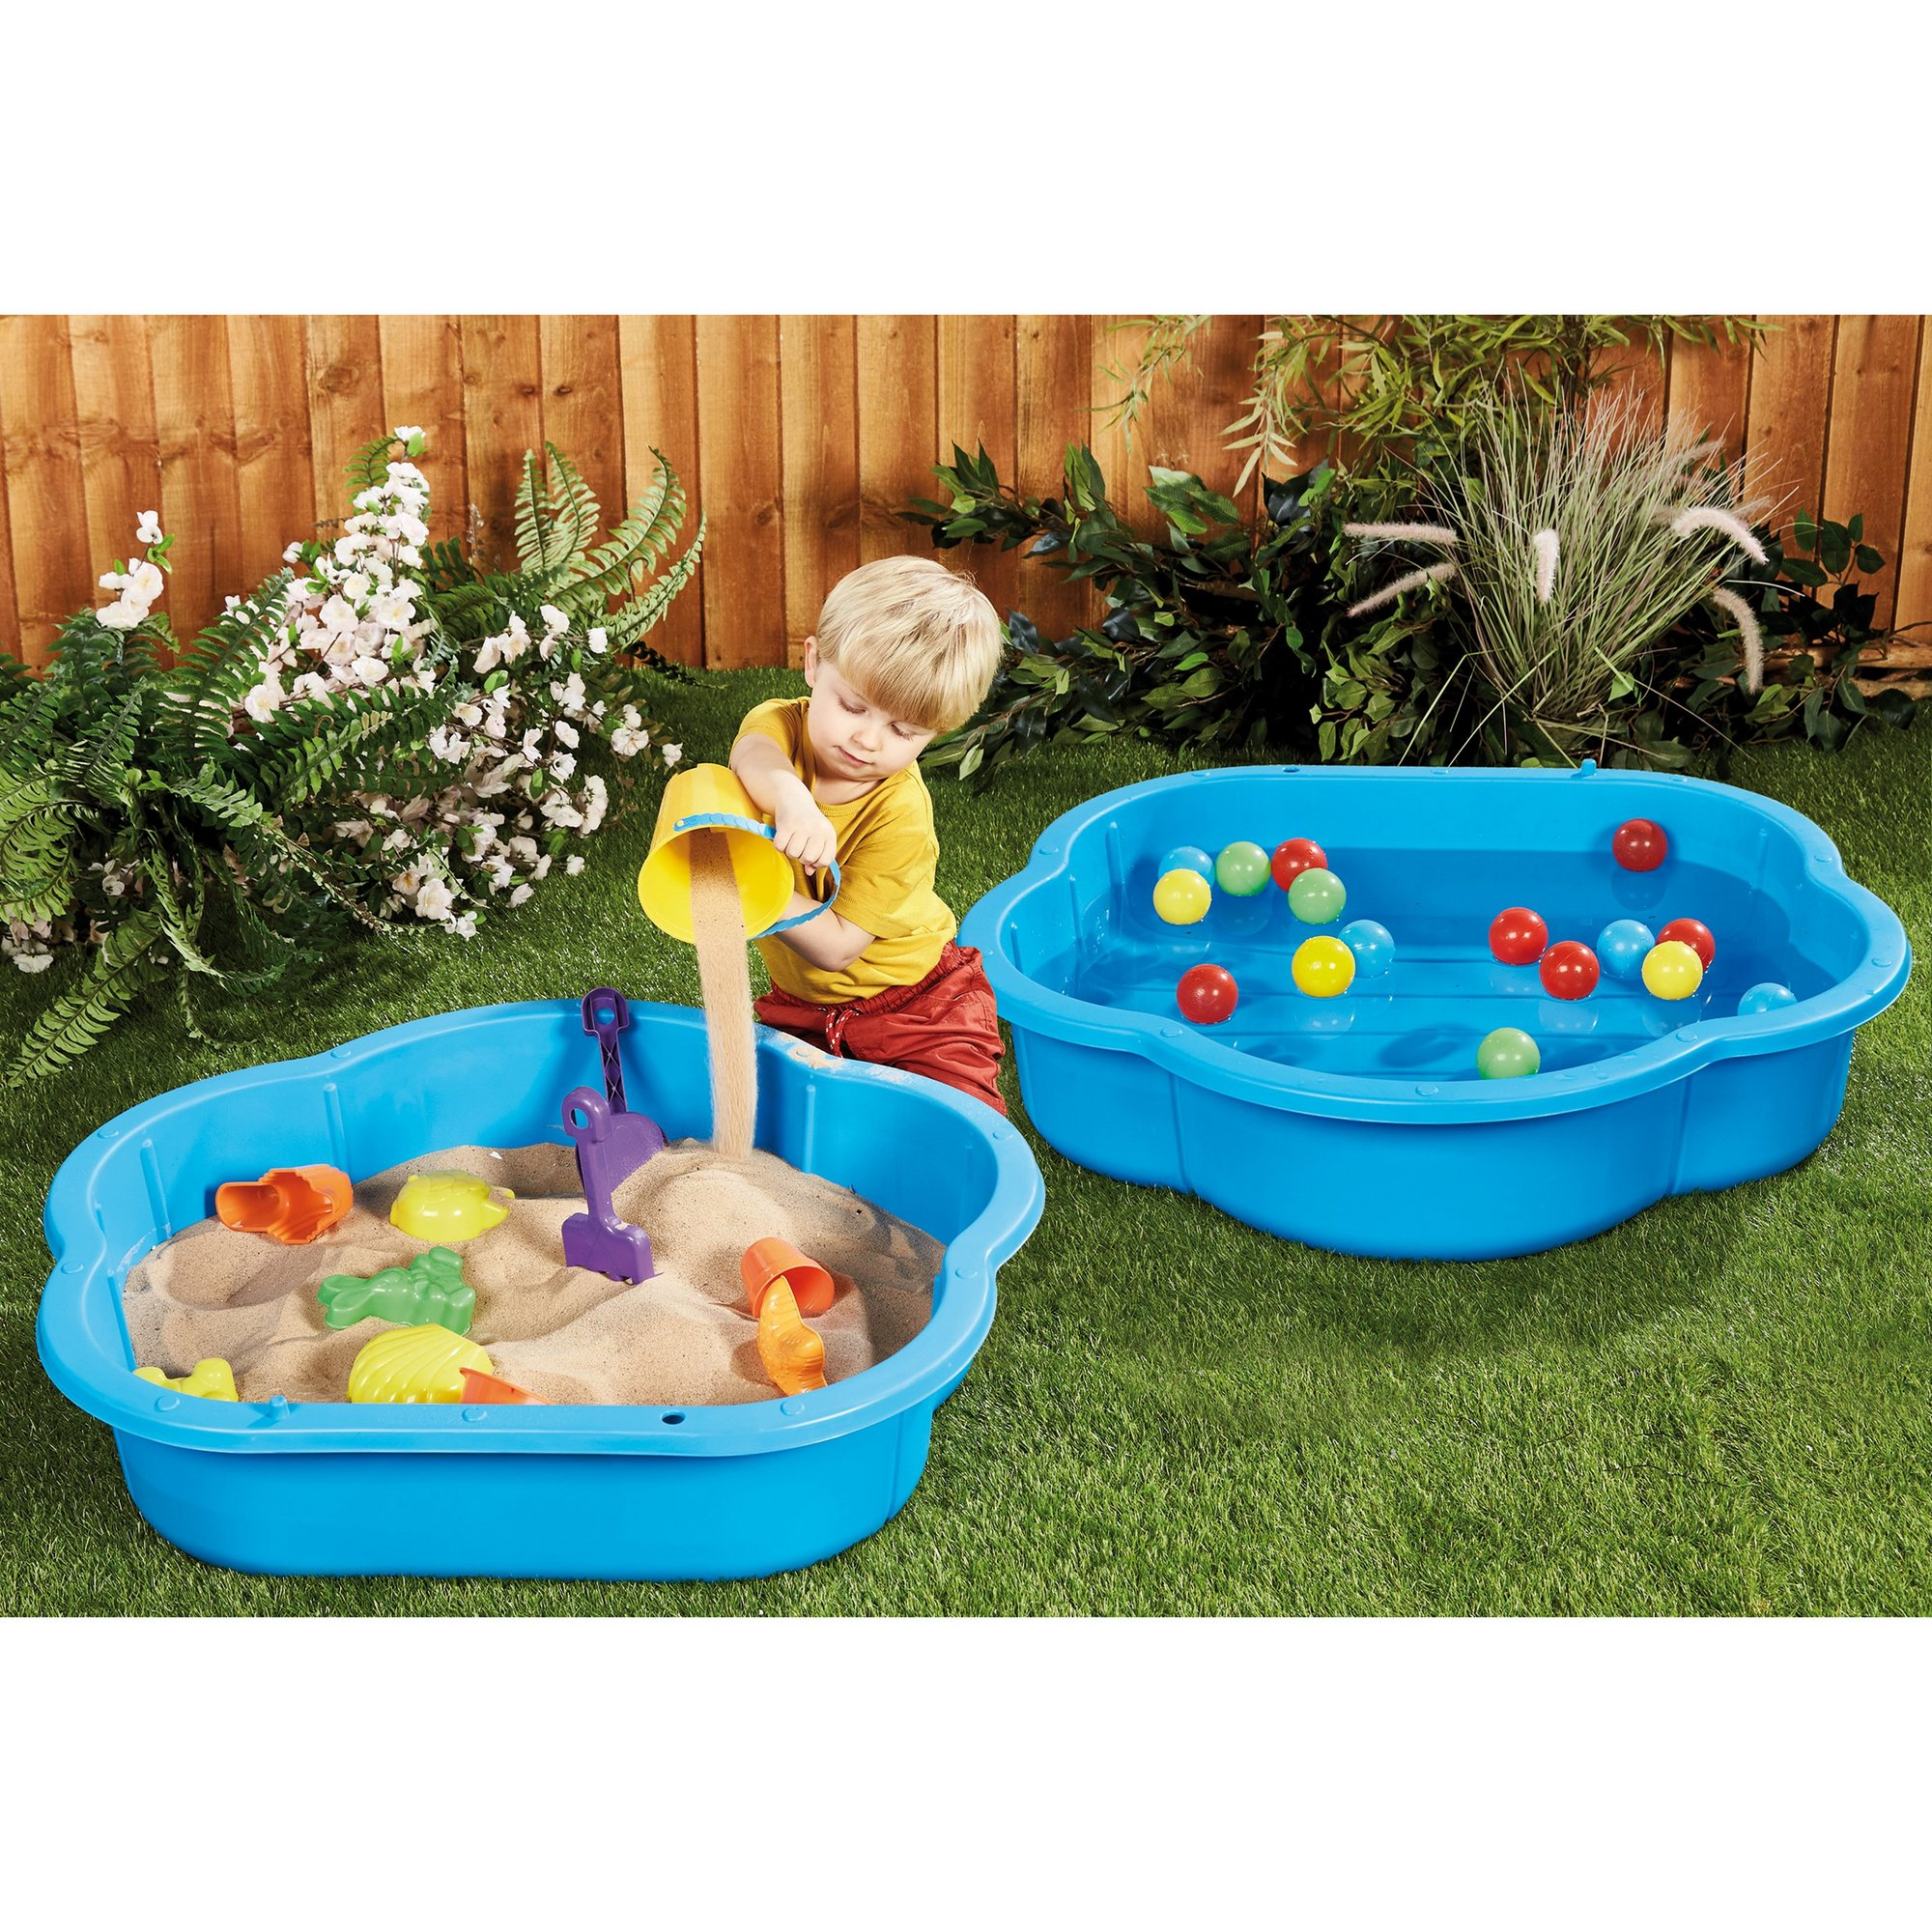 Image of Plastic Sand/Water Ball Pit and Skittles Set